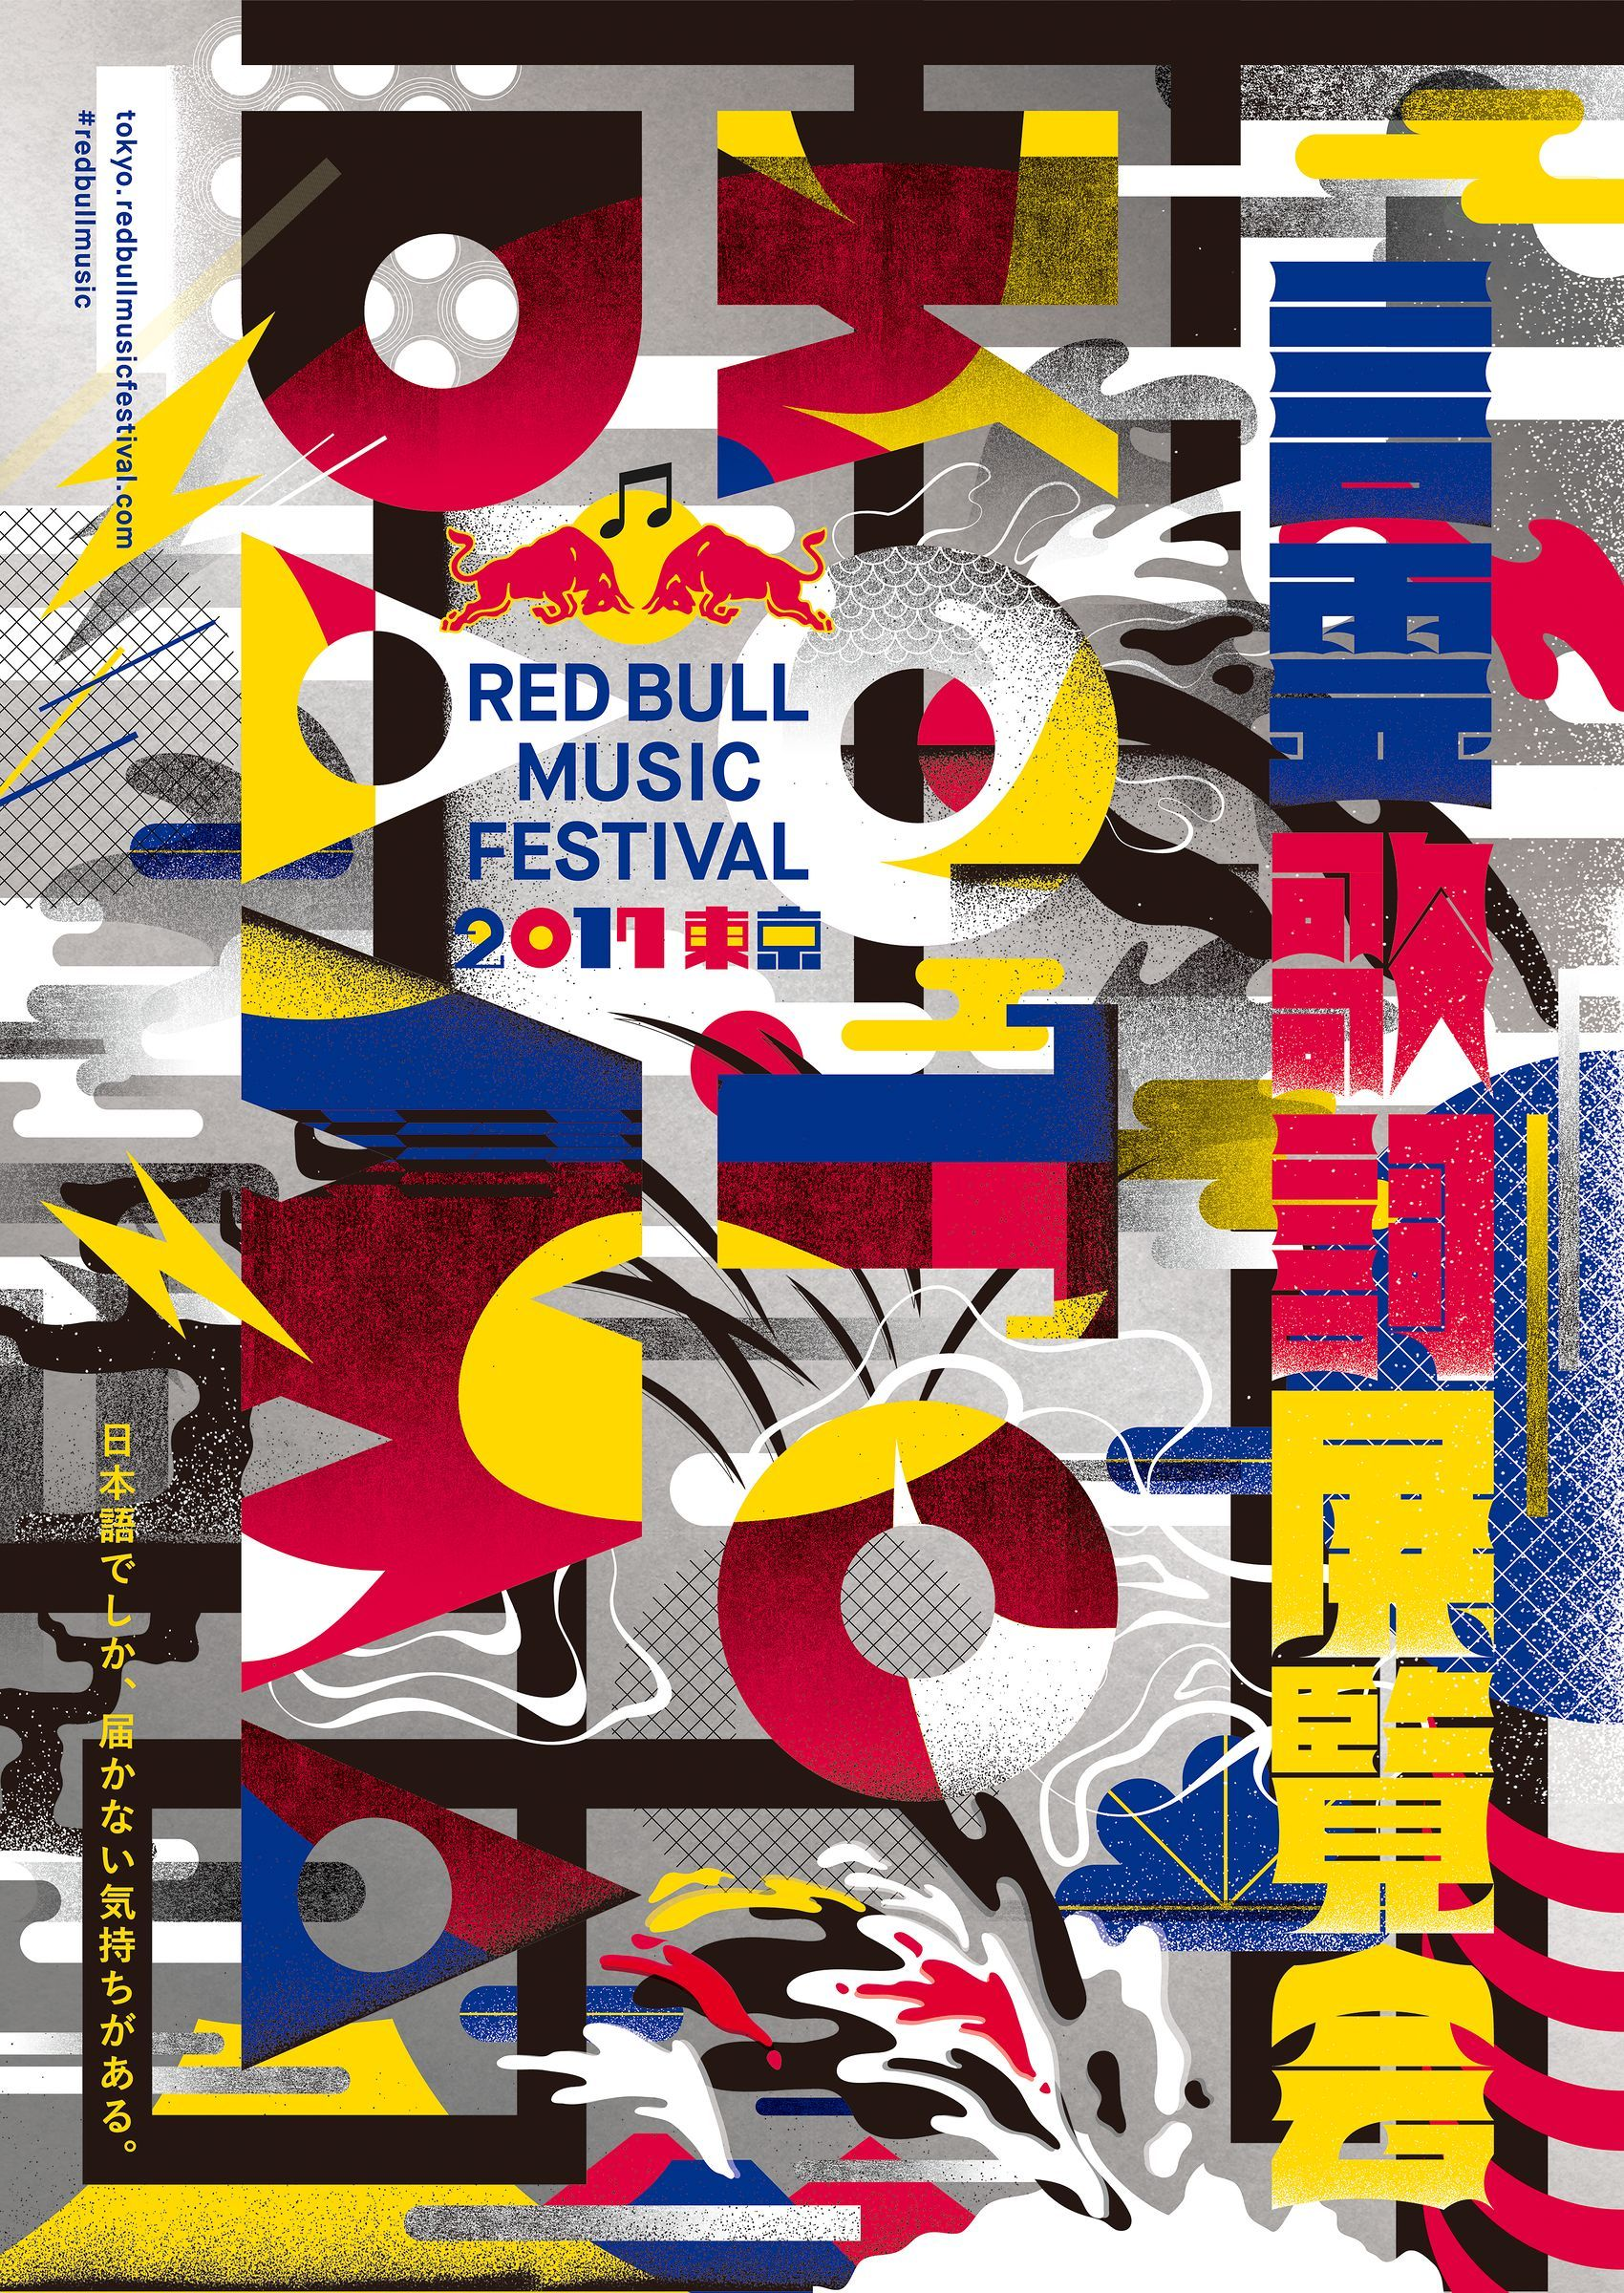 Red Bull Music Festival Tokyo Poster Design Kanji Typography Award Winning Typography For Advertising D Ad Red Bull Design Music Festival Graphic Poster